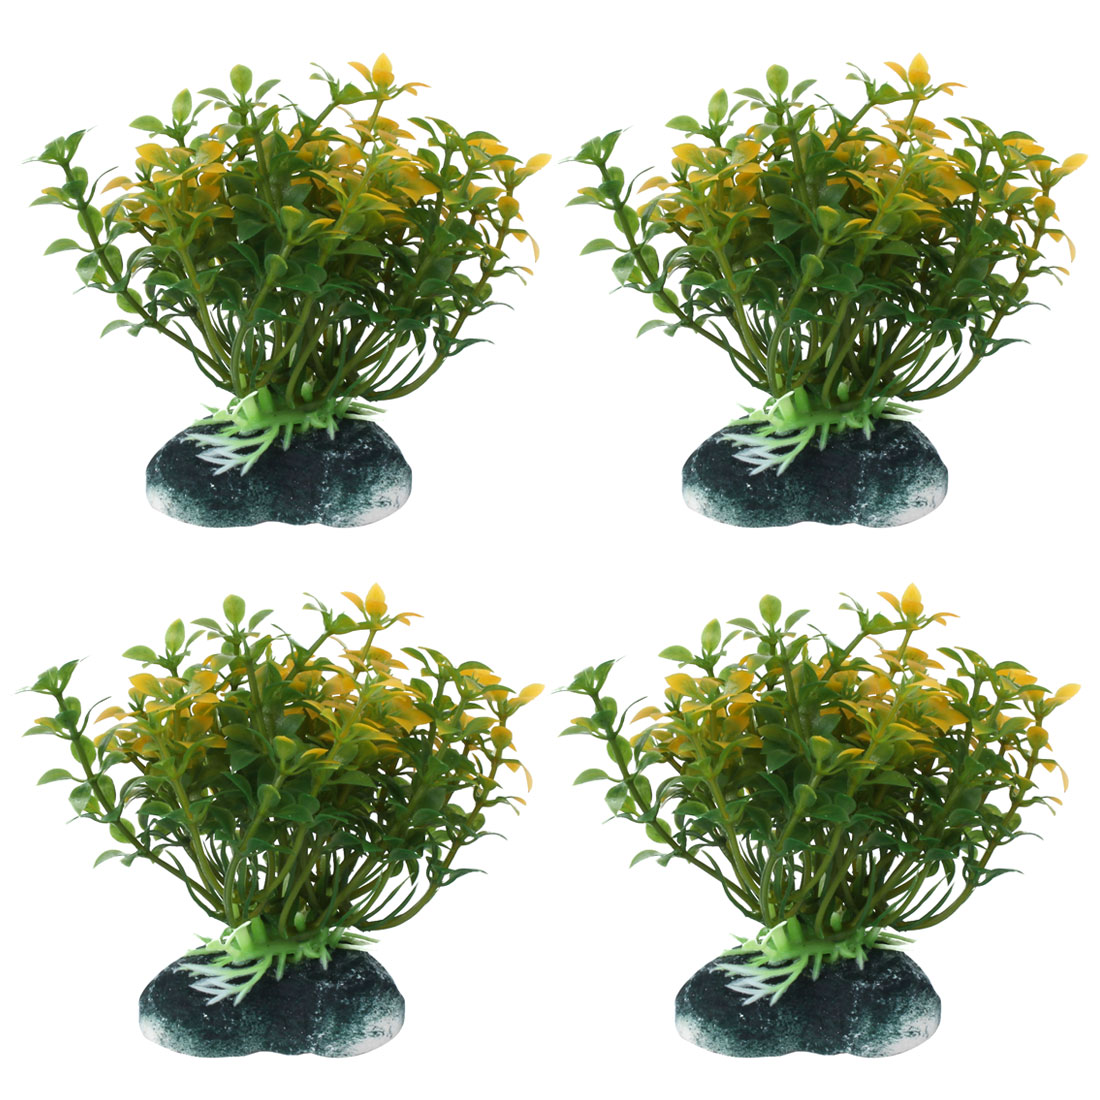 Fishbowl Aquarium Plastic Manmade Underwater Grass Plant Decor Green Yellow 4pcs